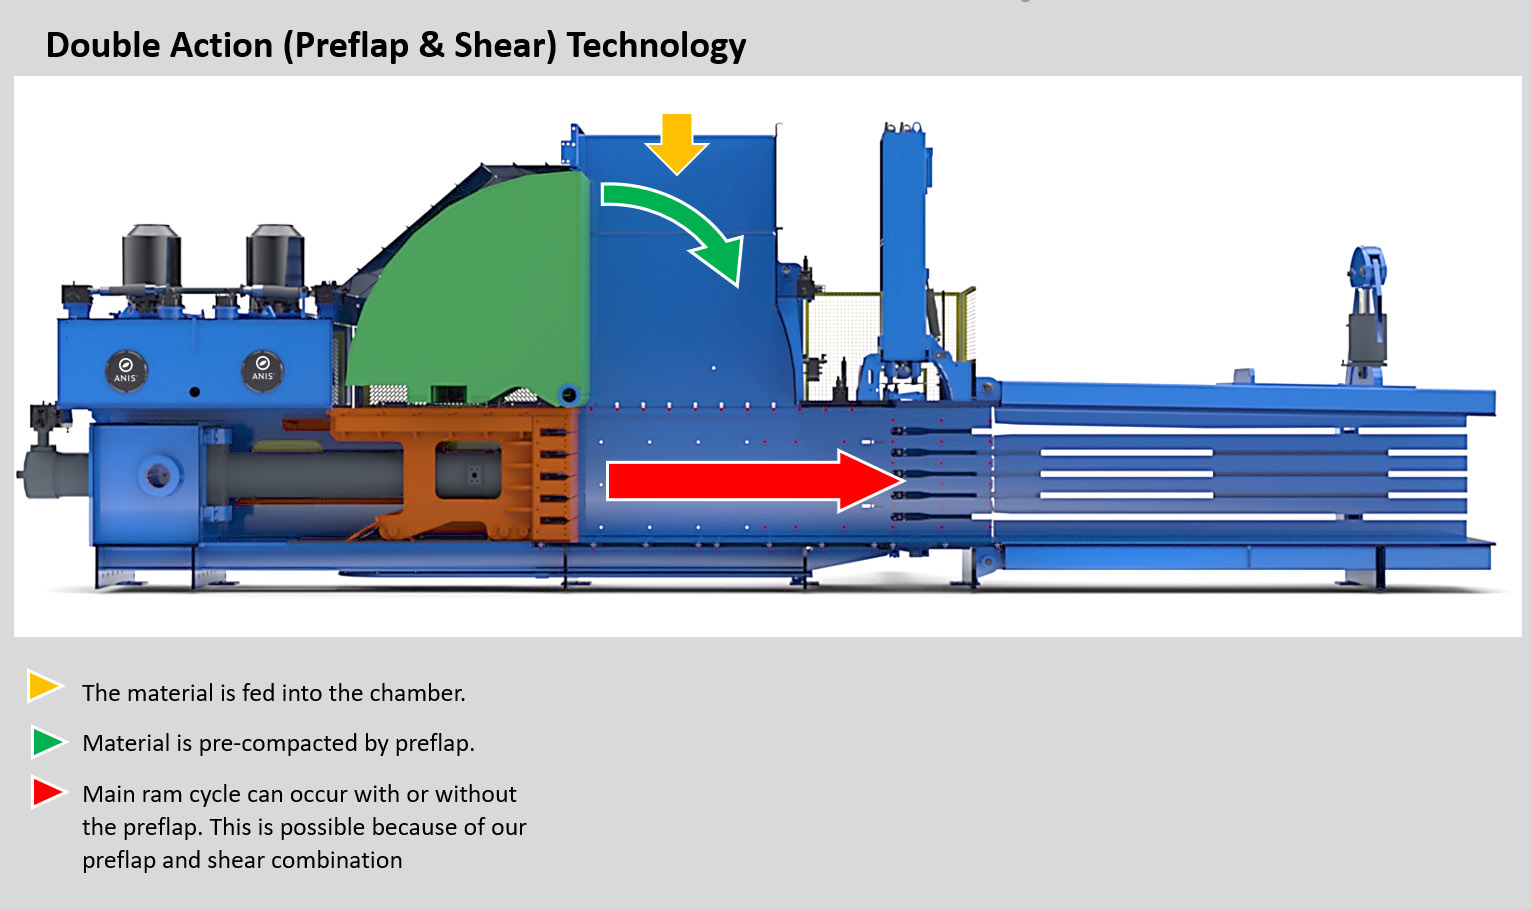 Double Action (Preflap & Shear) Technology